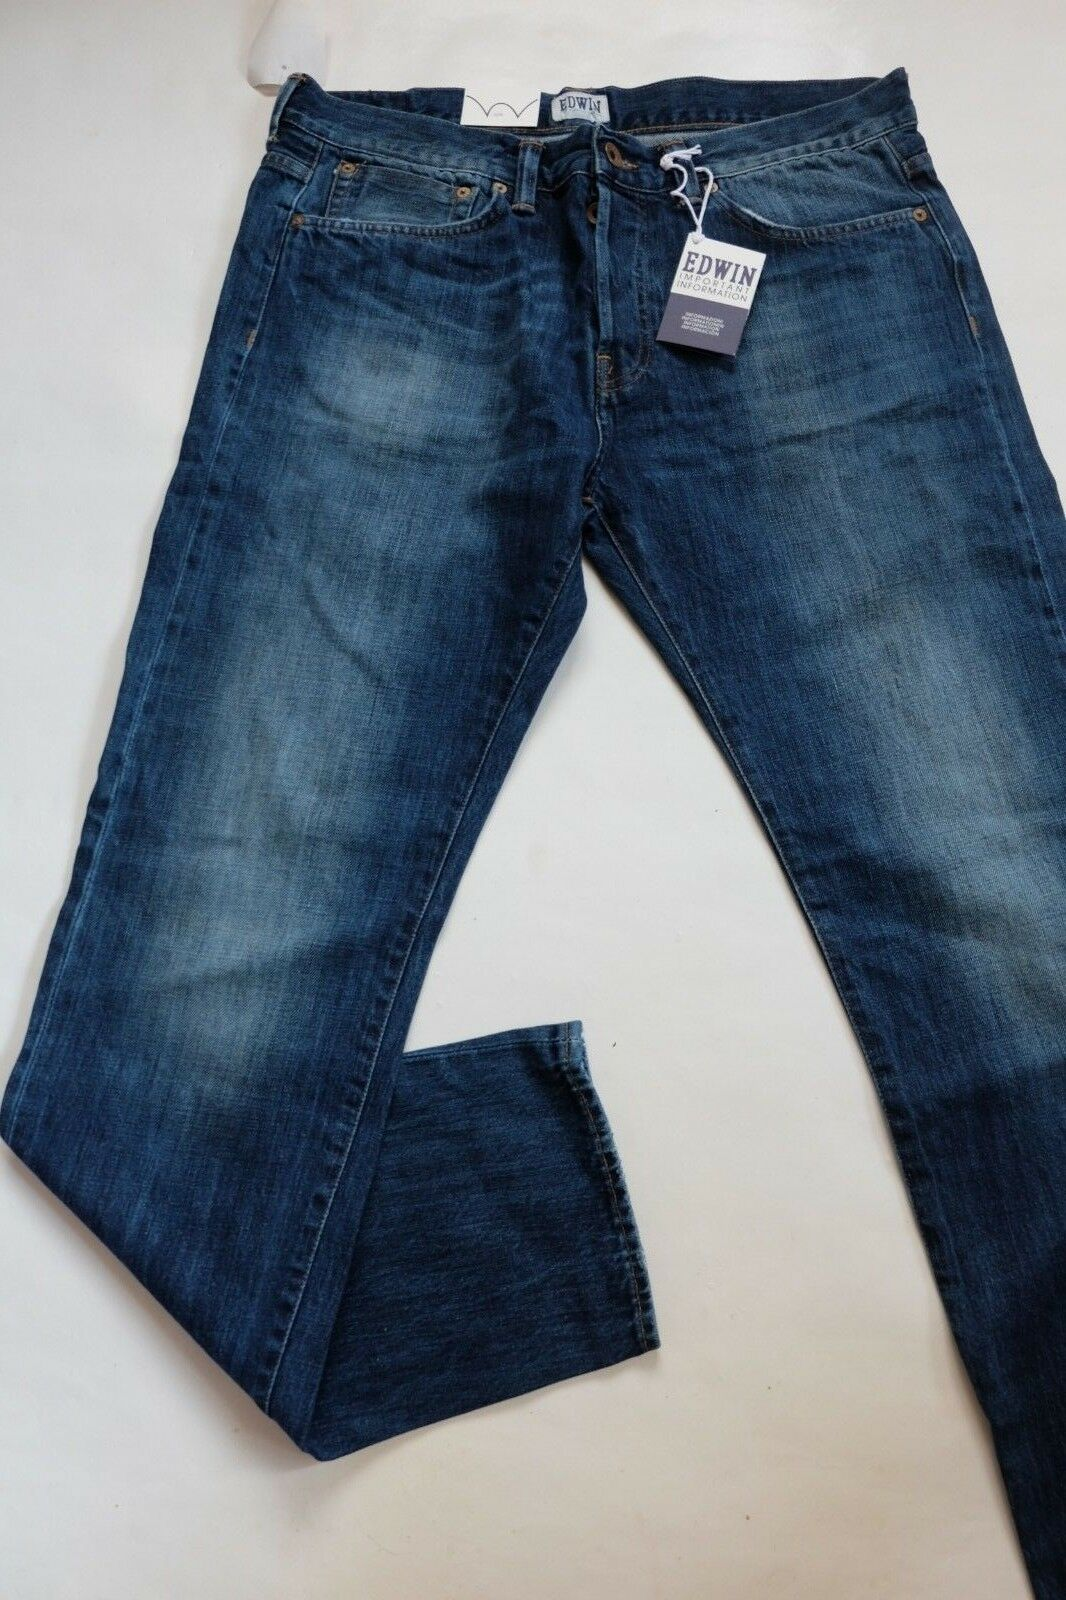 JEANS EDWIN MAN ED 80 SLIM TAPERED (white listed- bluee G14) W36 L32 VAL